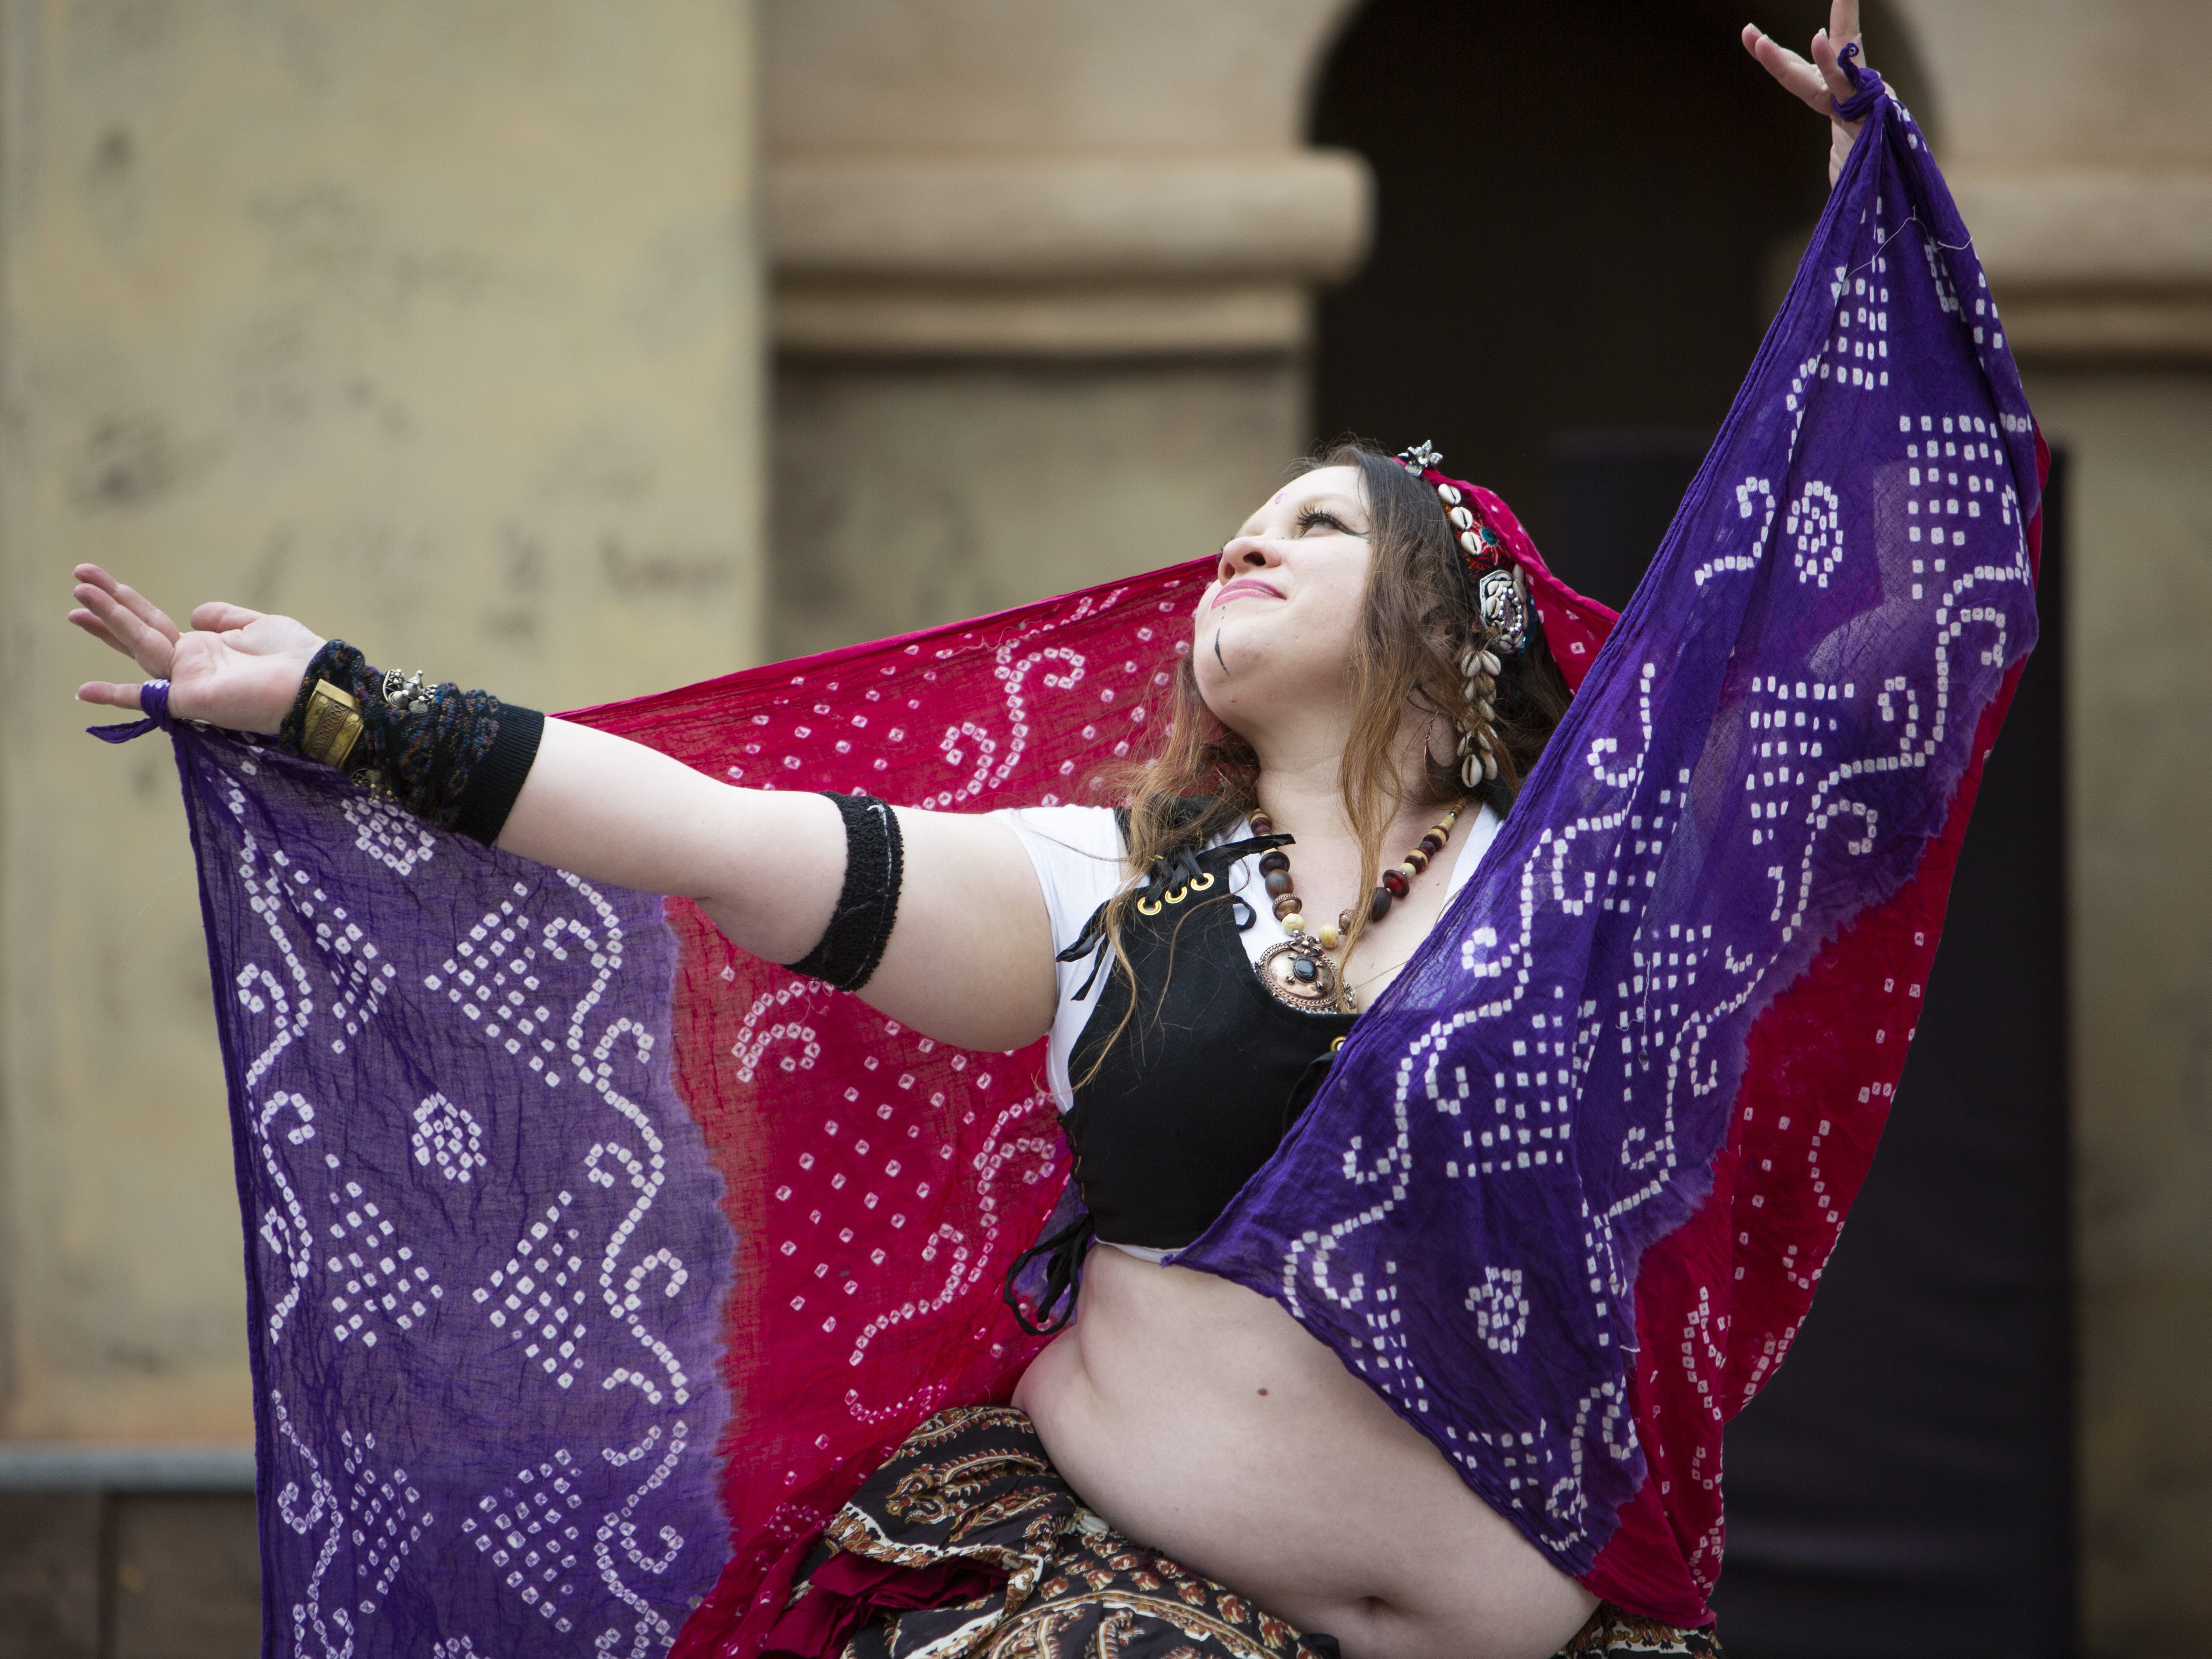 Ghazaal Beledi dancer Laura Masterson, who goes by the stage name of Lorella, performs at the Arizona Renaissance Festival 2019 on Feb. 9, 2019 in Gold Canyon, Ariz.